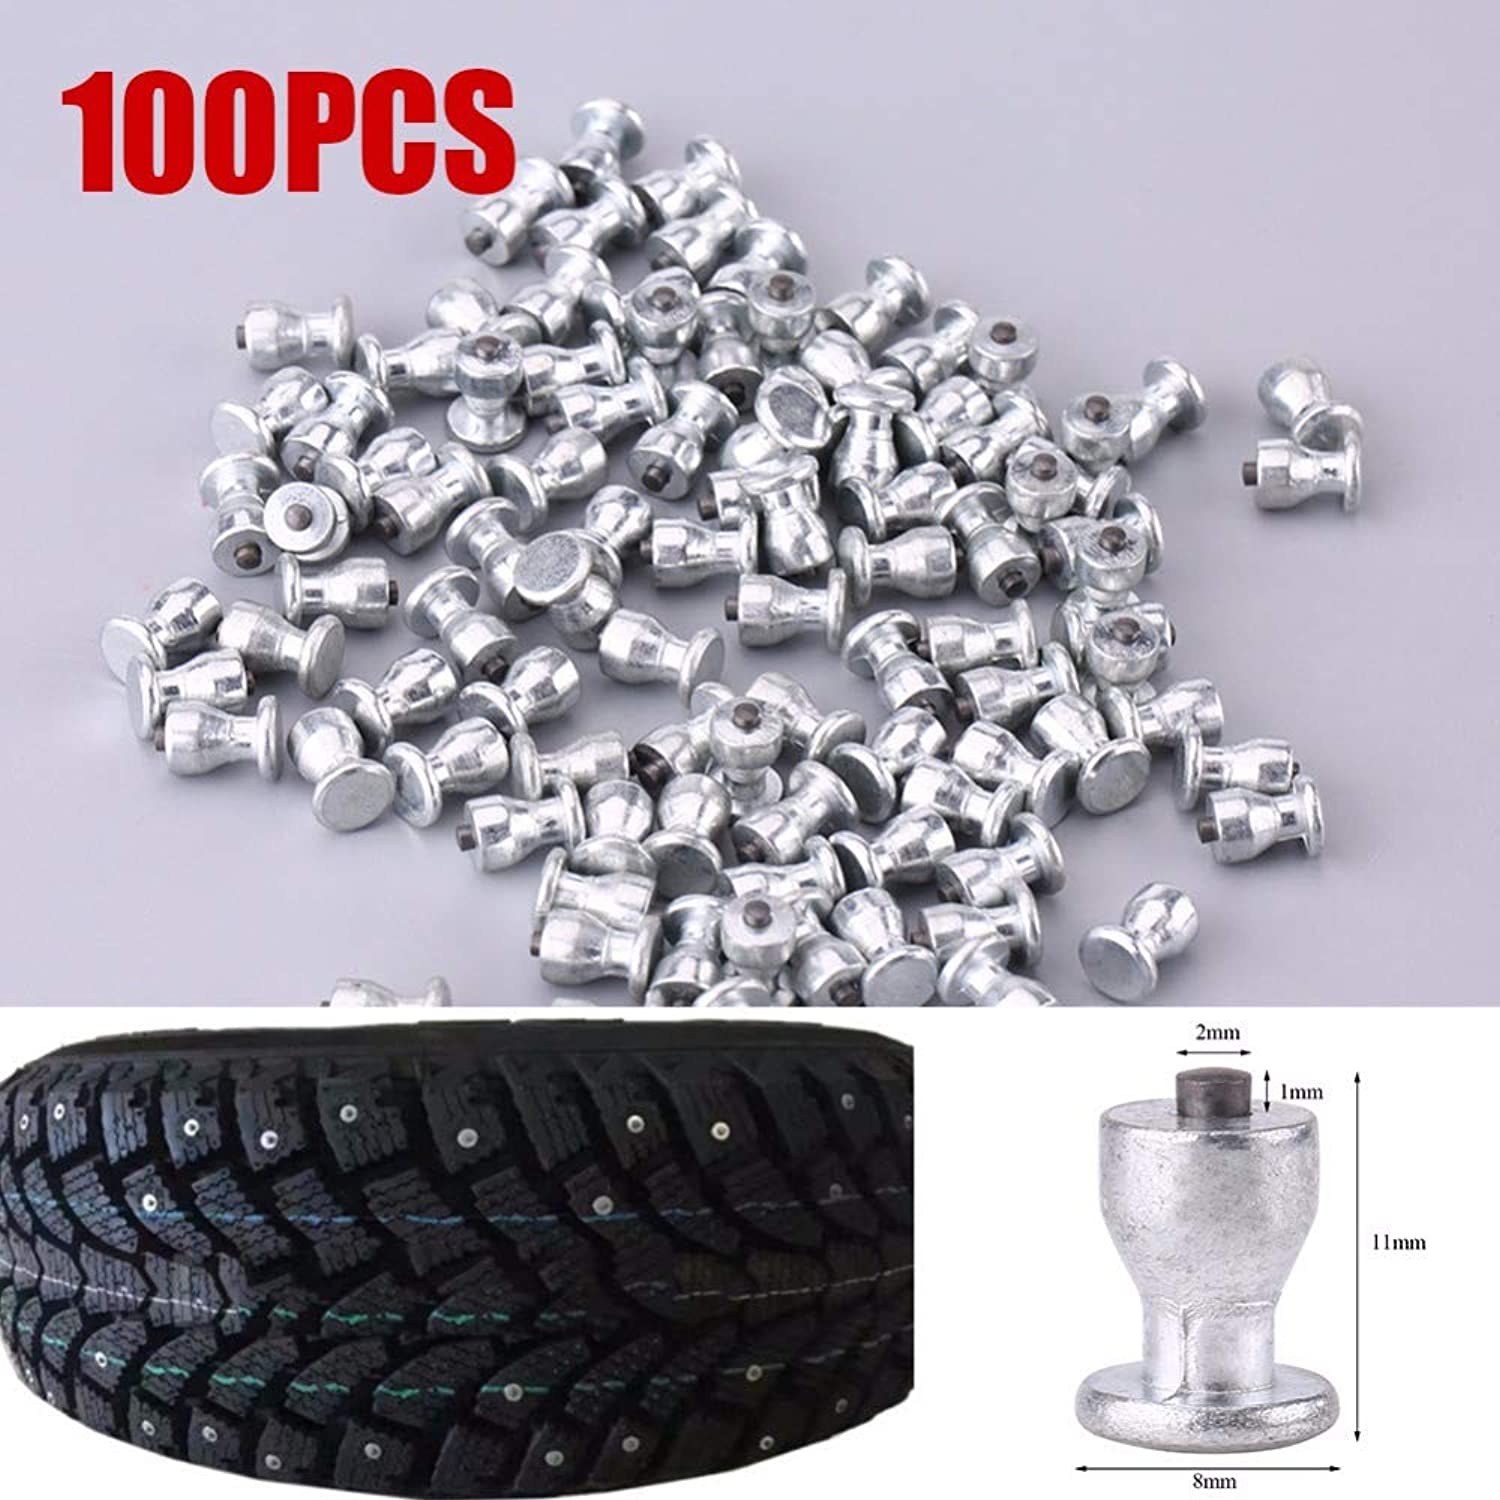 SalaStore  100pcs 8mm 0.31  Wheel Tyre Stud Screws Snow Tire Spikes AntiSlip Screws for Car Auto SUV ATV